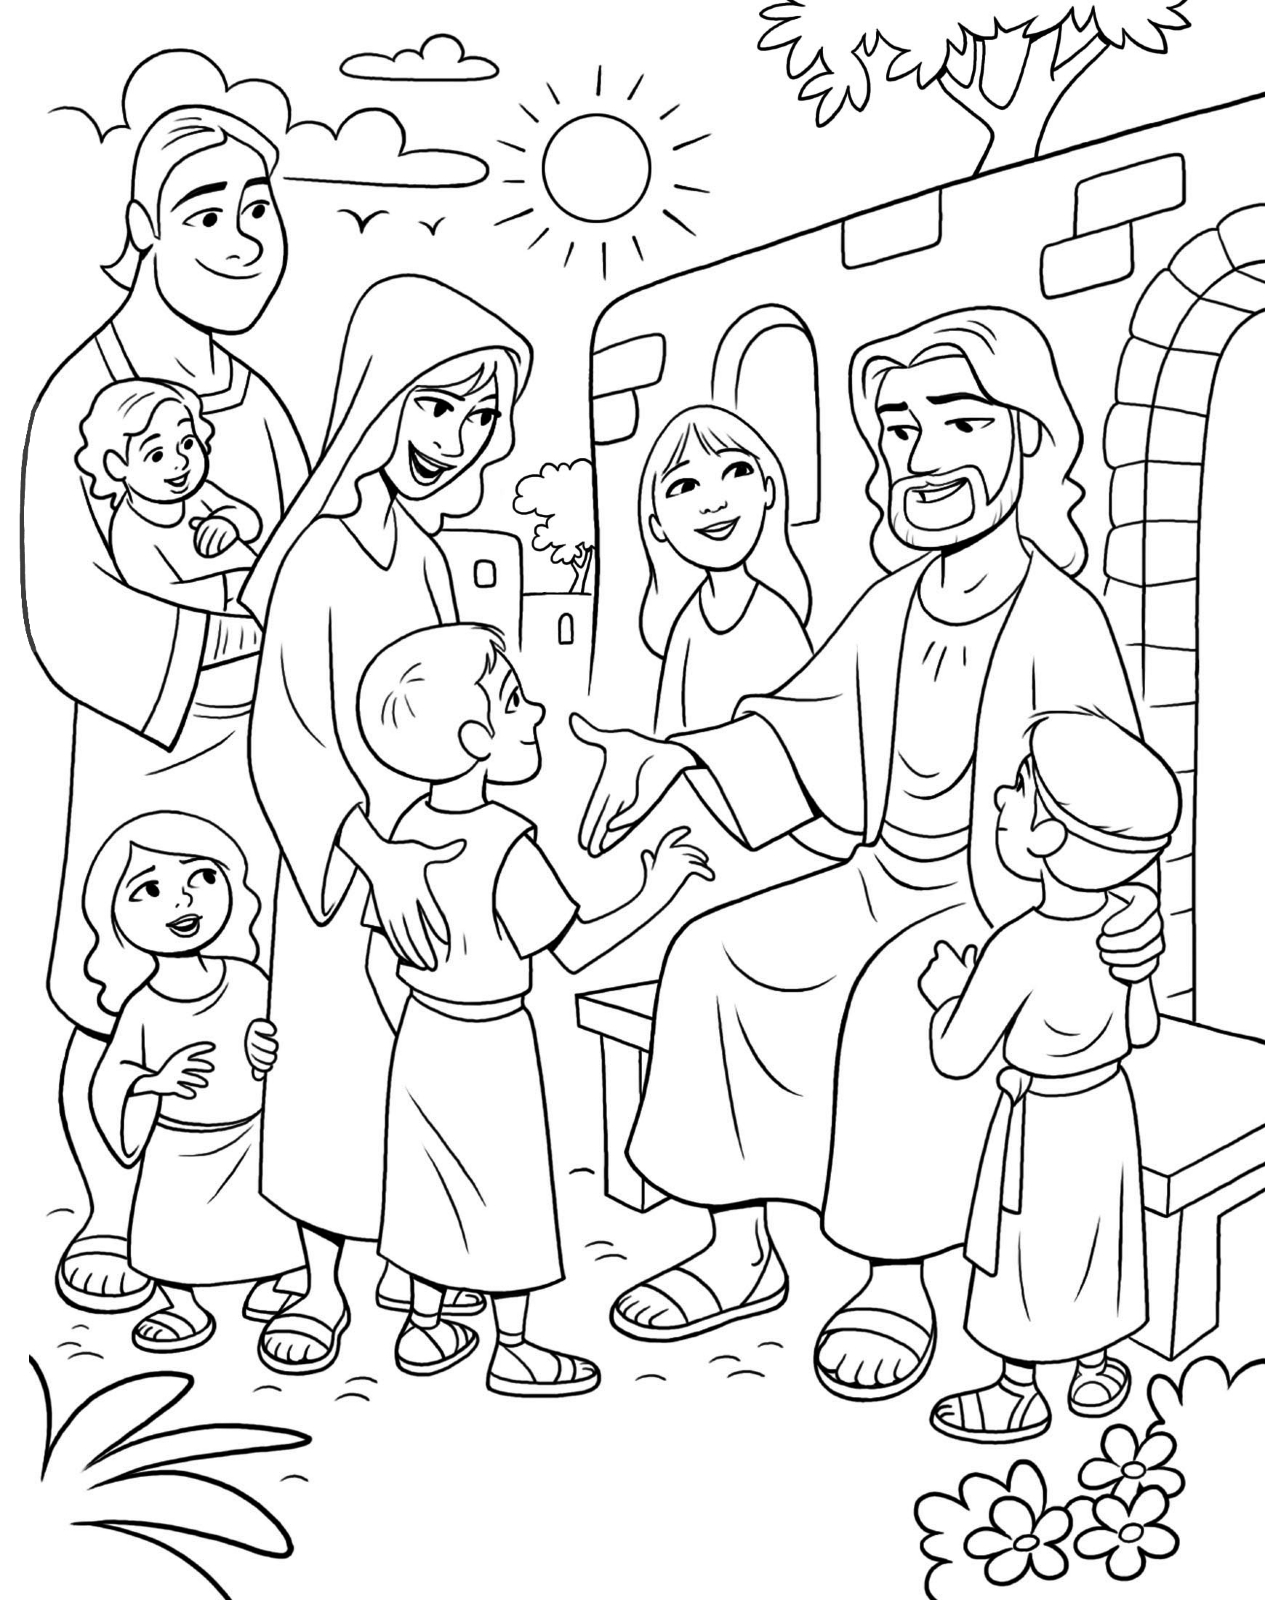 Jesus Coloring Pages For Kids Printable at GetDrawings.com ...